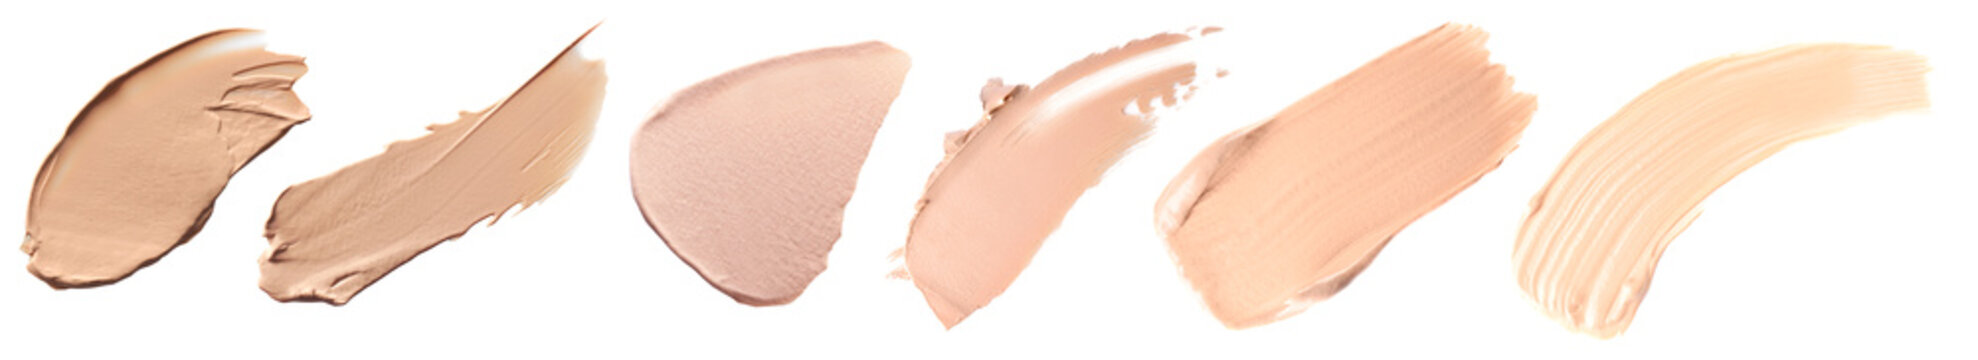 Makeup product smears on white background. Color set of foundation